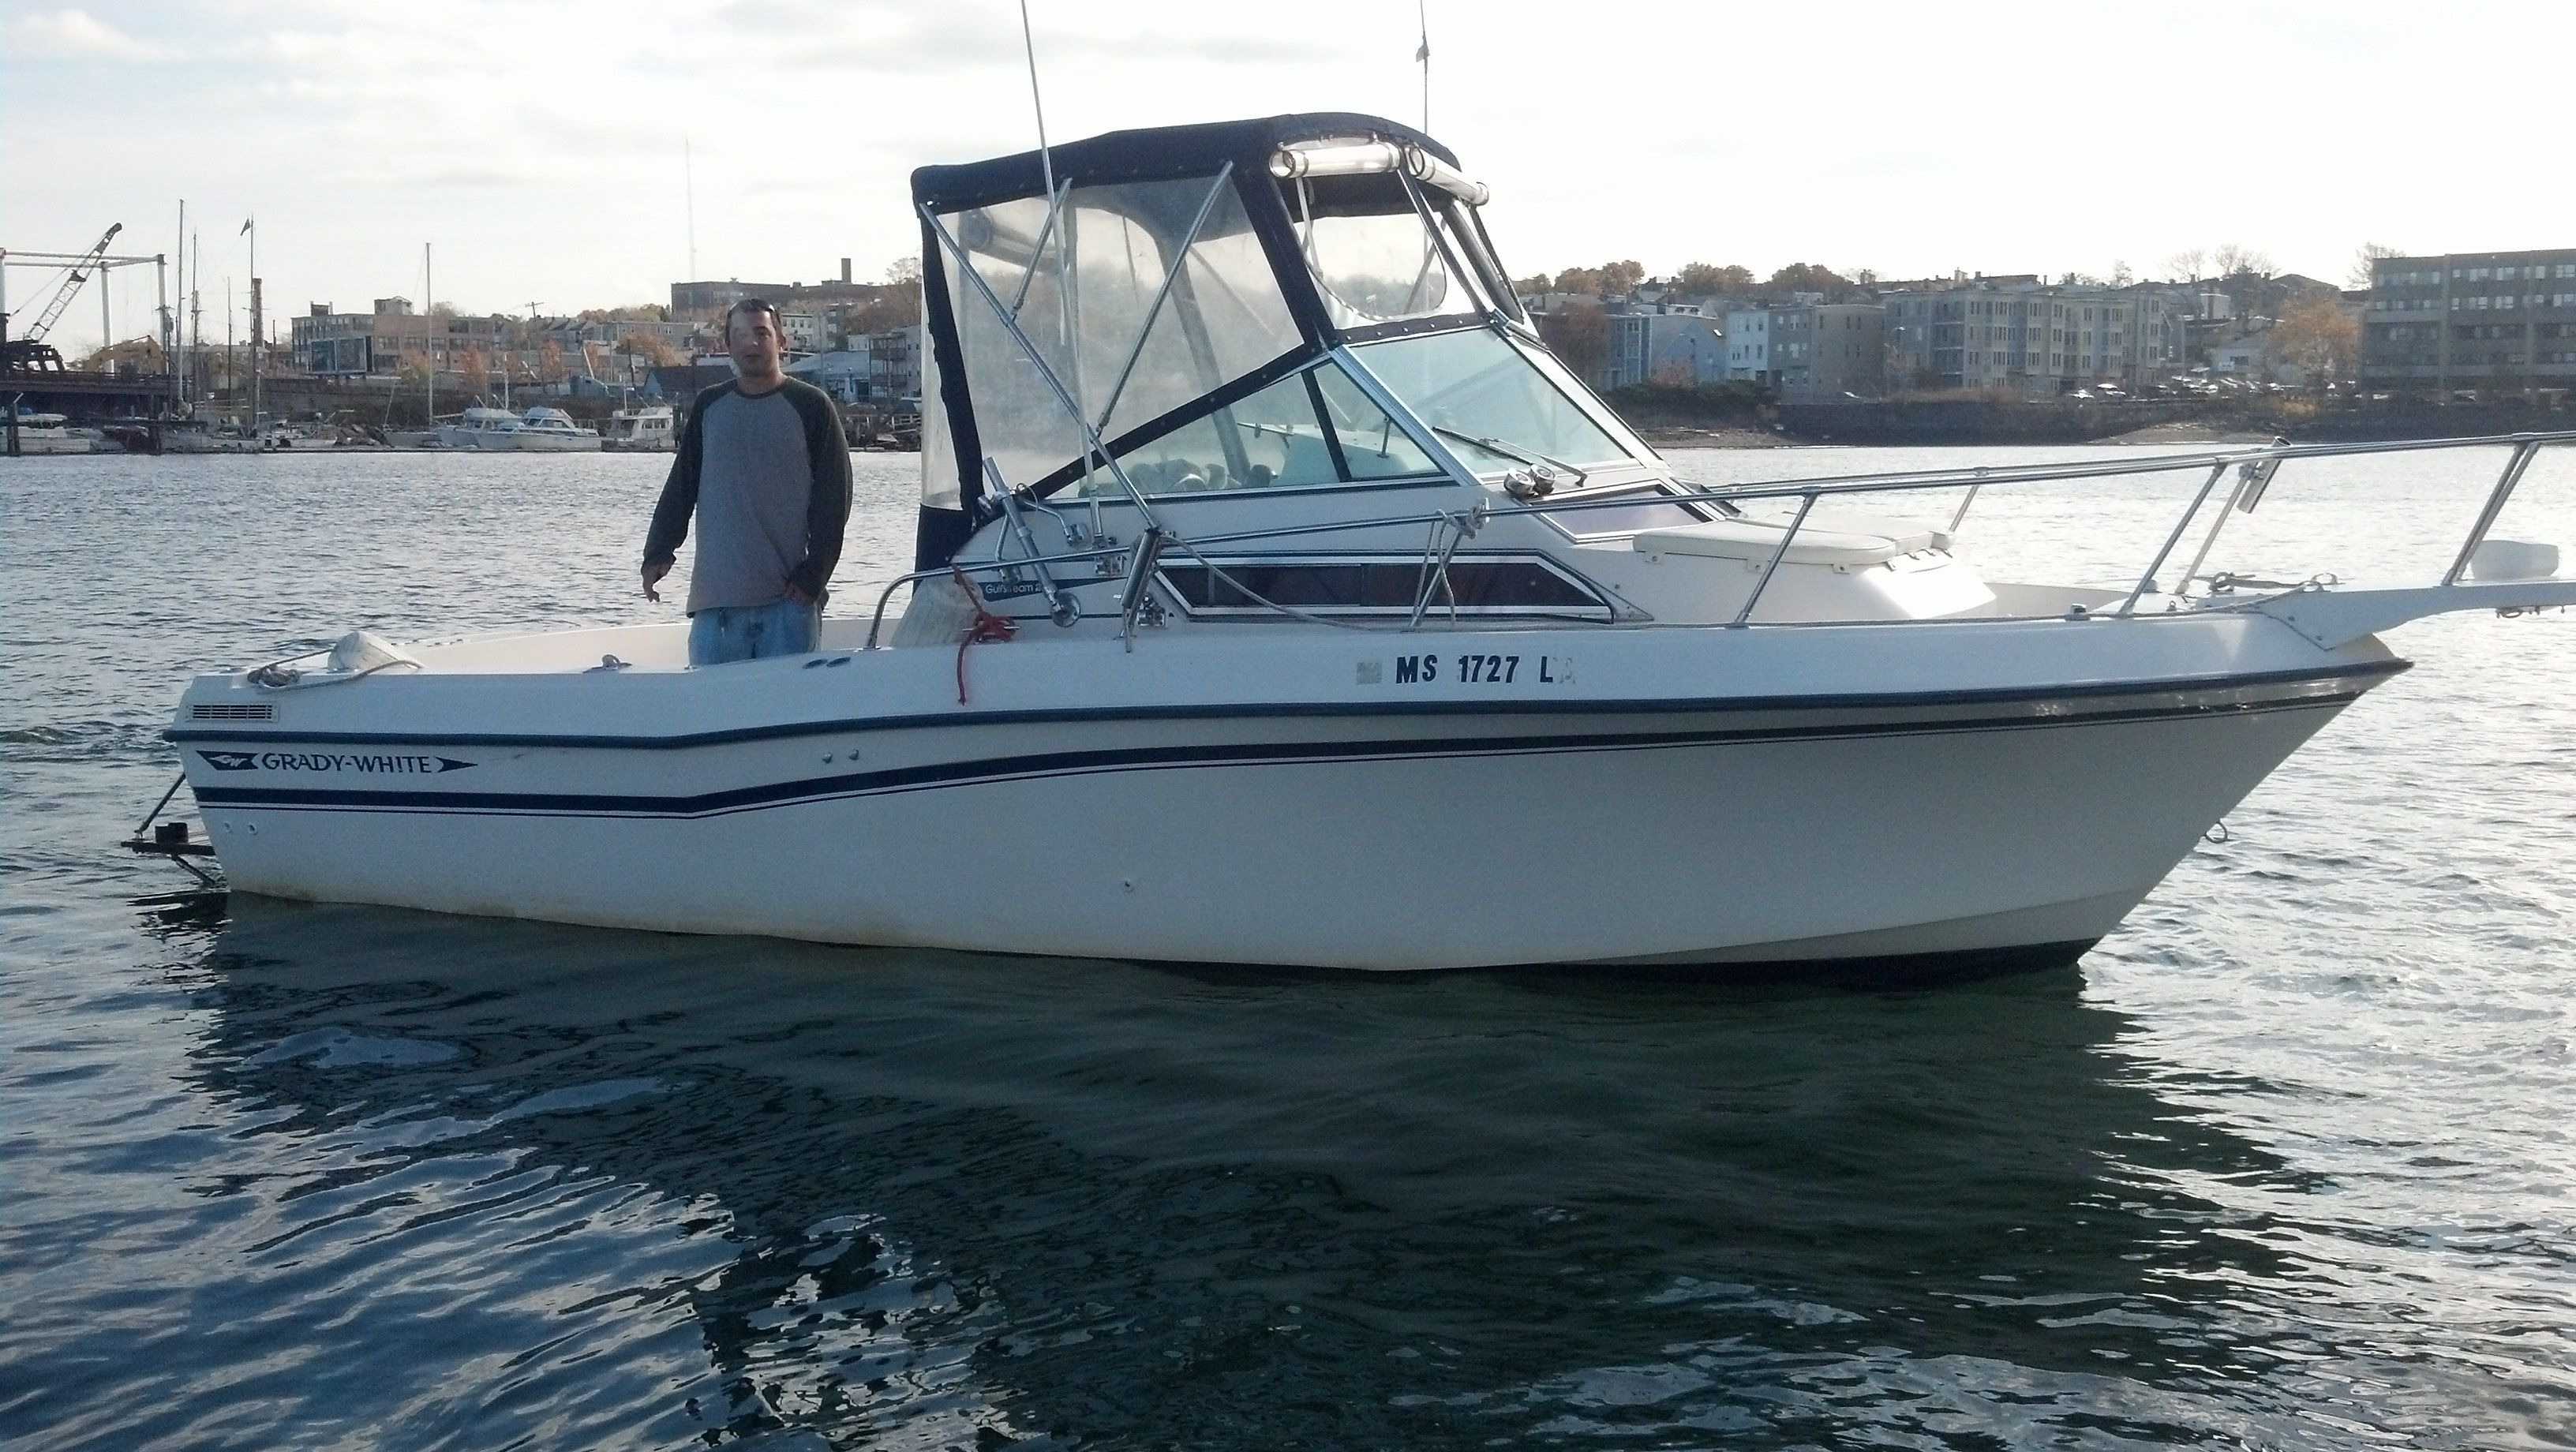 Boat Rental on Boston Harbor